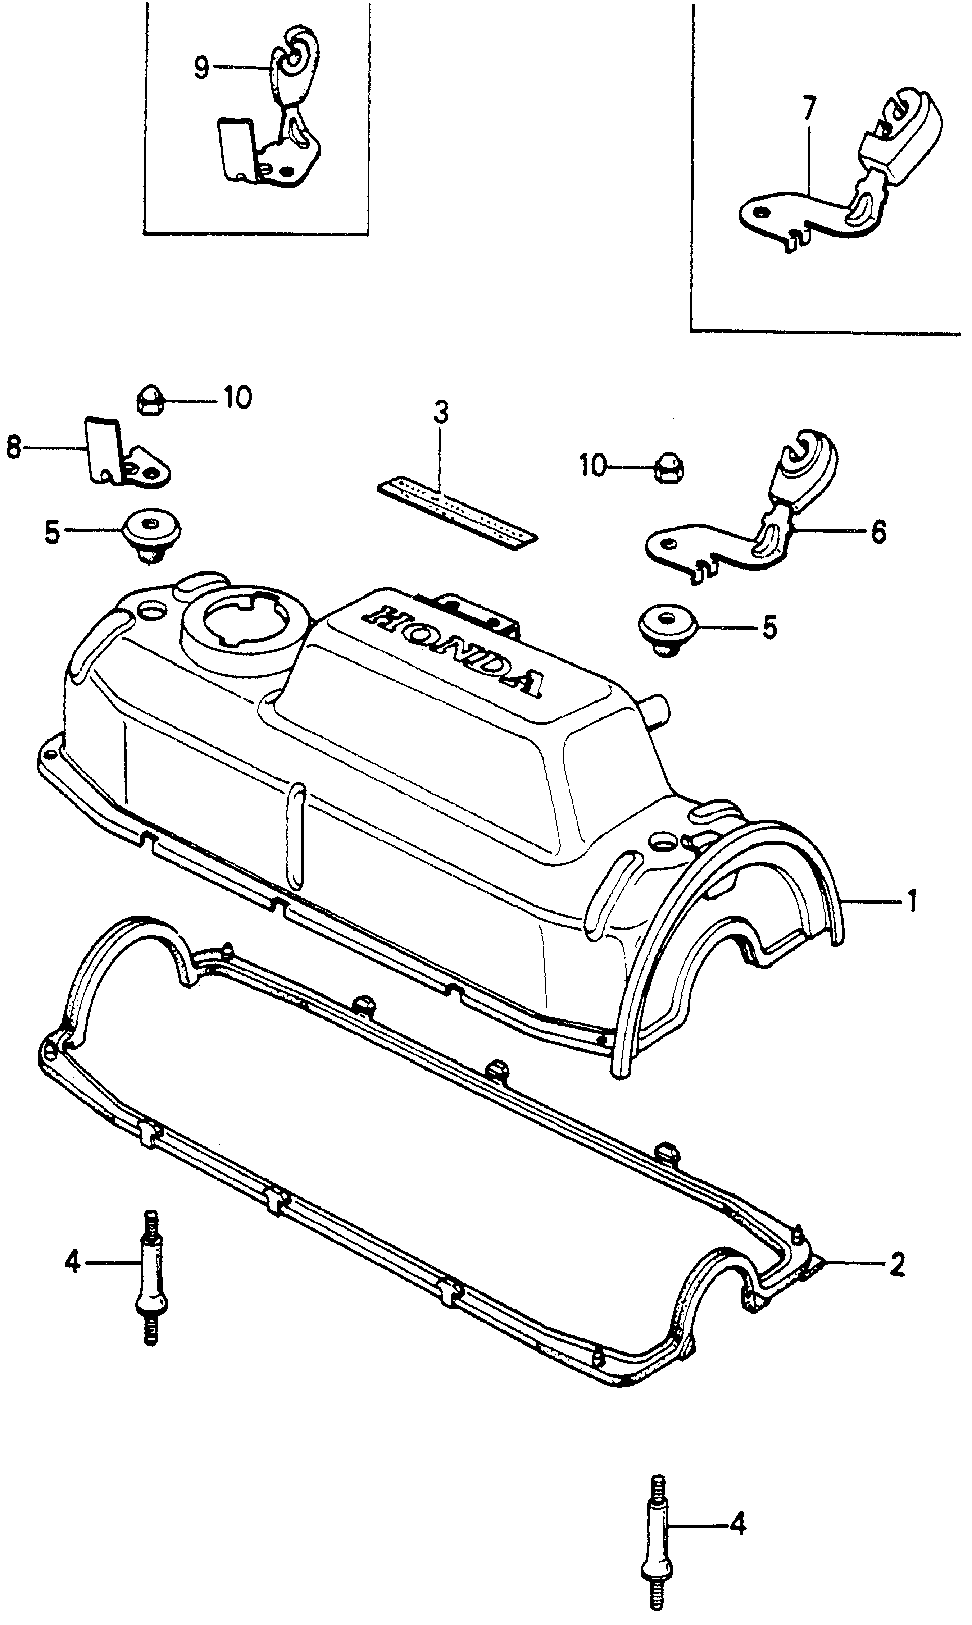 12341-PC1-010 - GASKET, HEAD COVER